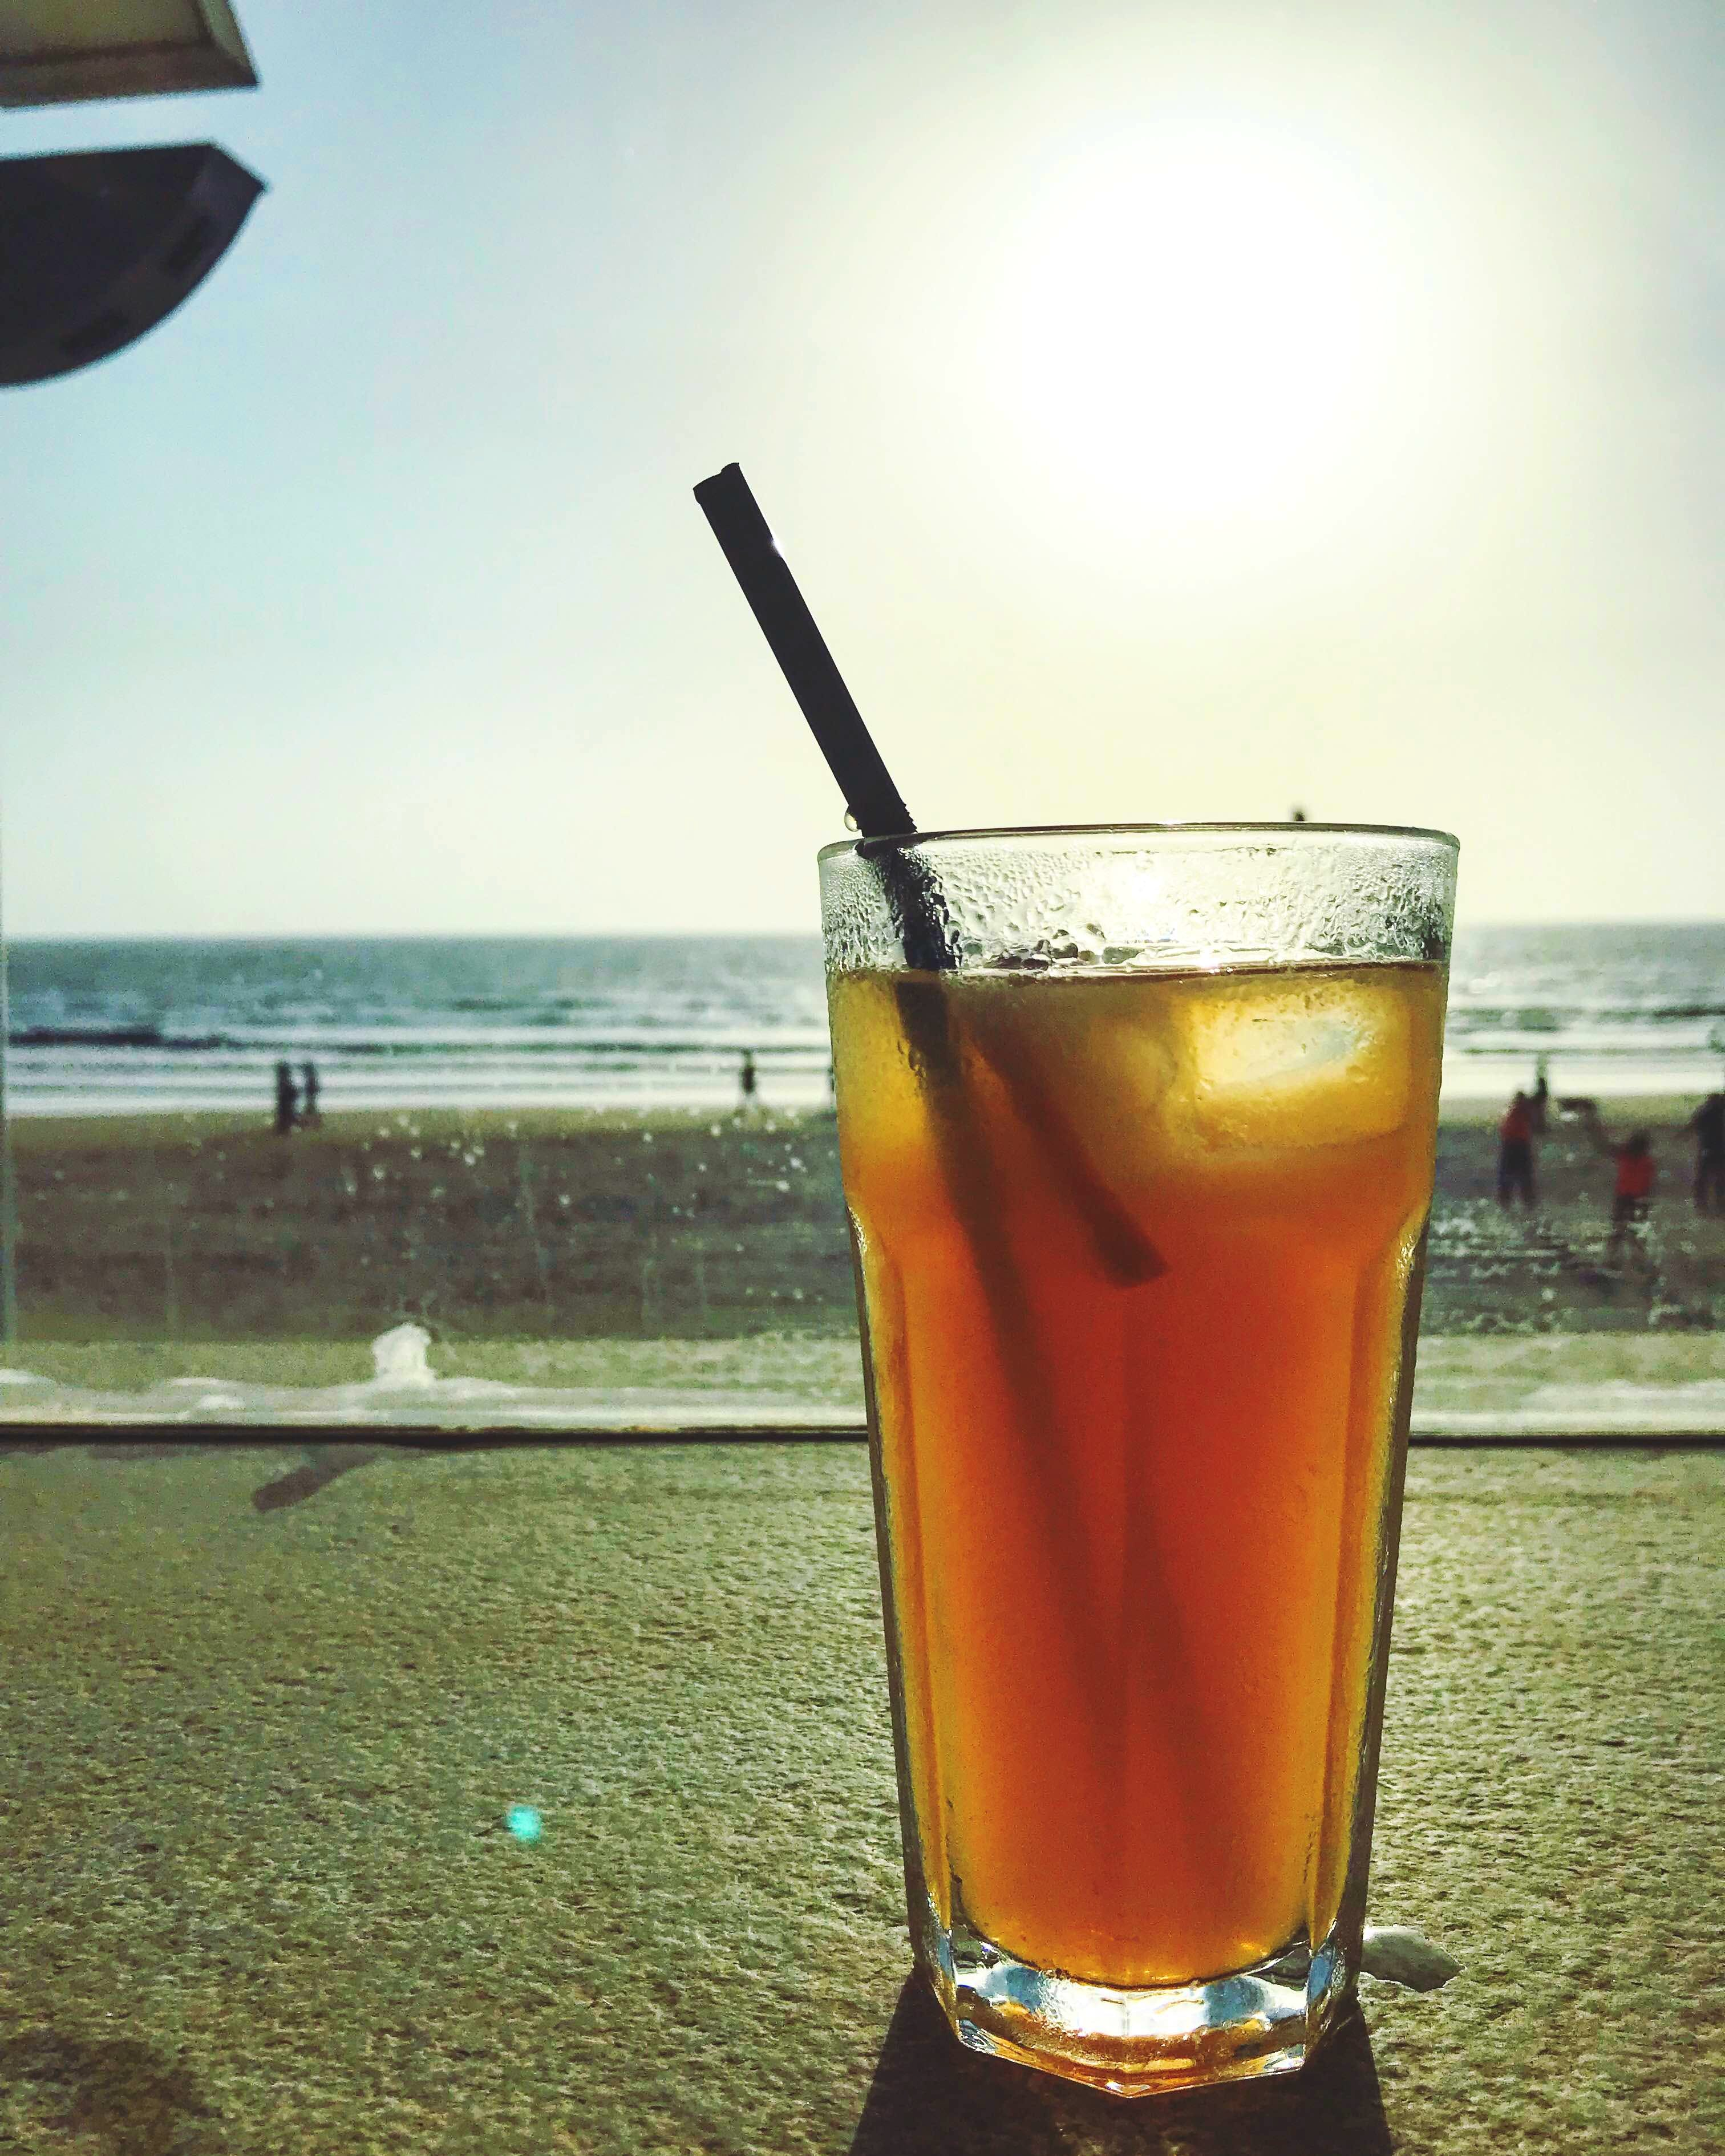 Drink,Rum swizzle,Alcoholic beverage,Distilled beverage,Dark 'n' stormy,Cocktail,Non-alcoholic beverage,Vacation,Arnold palmer,Mai tai